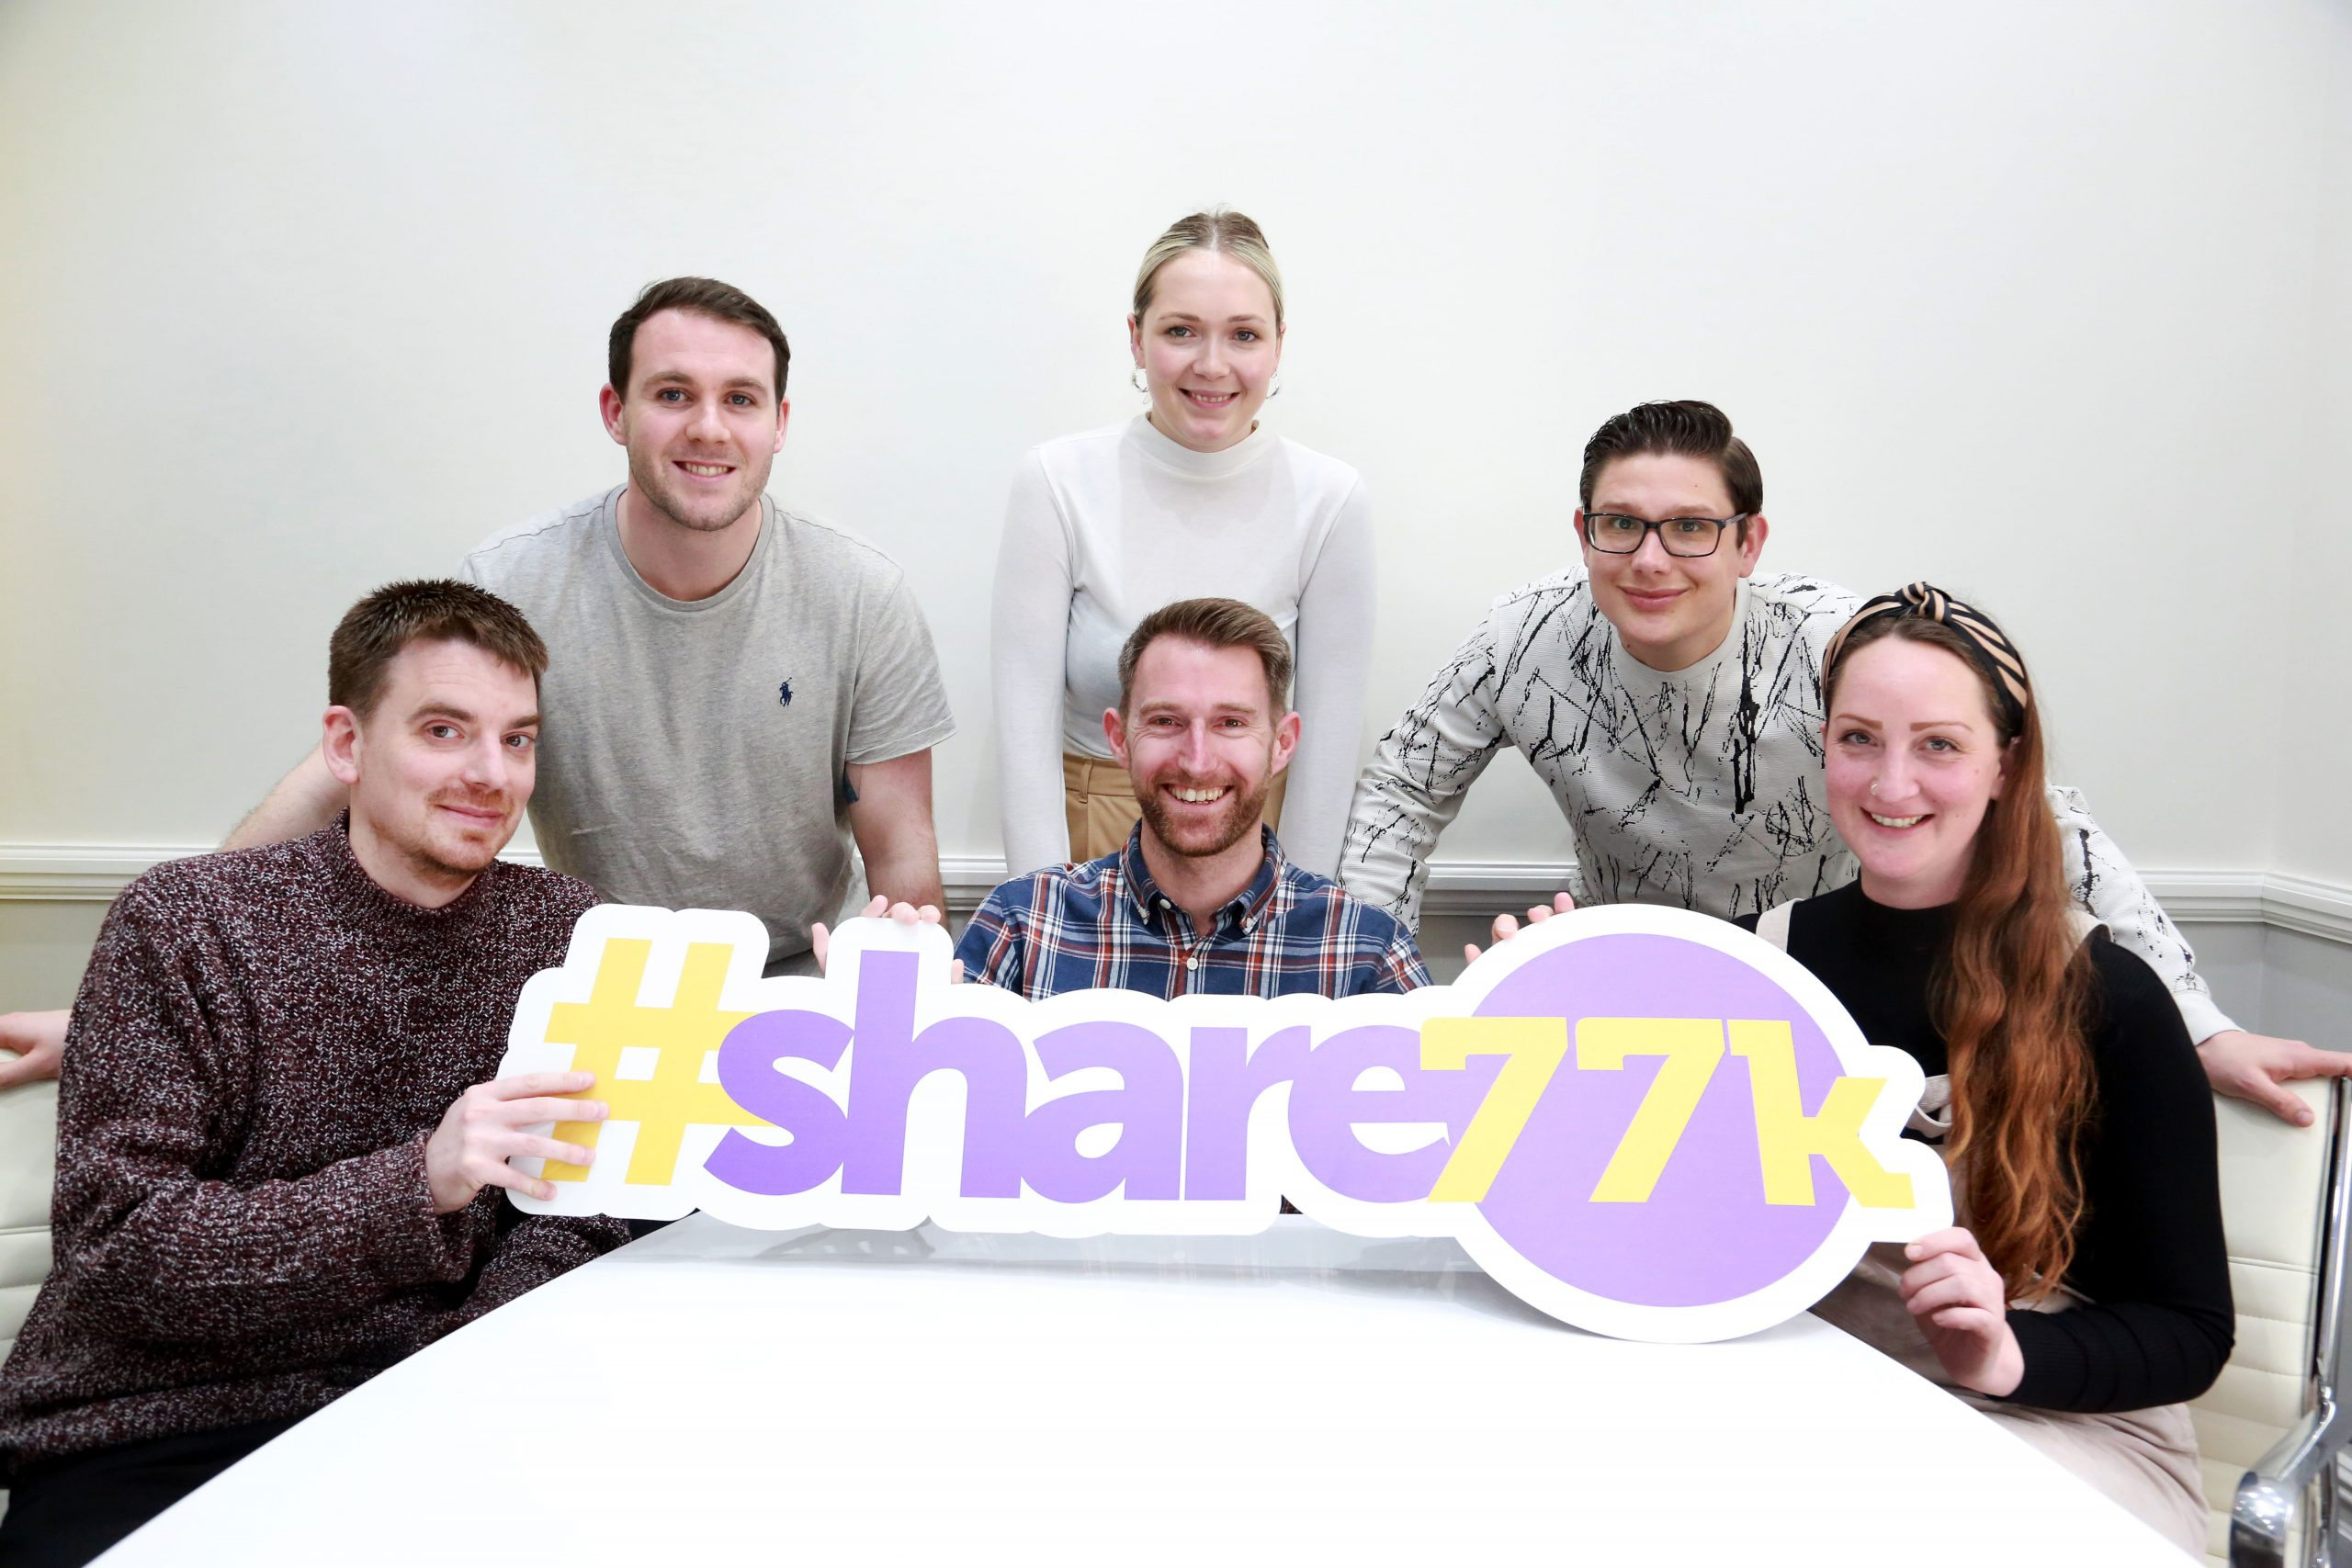 Photo of team holding #share77k sign